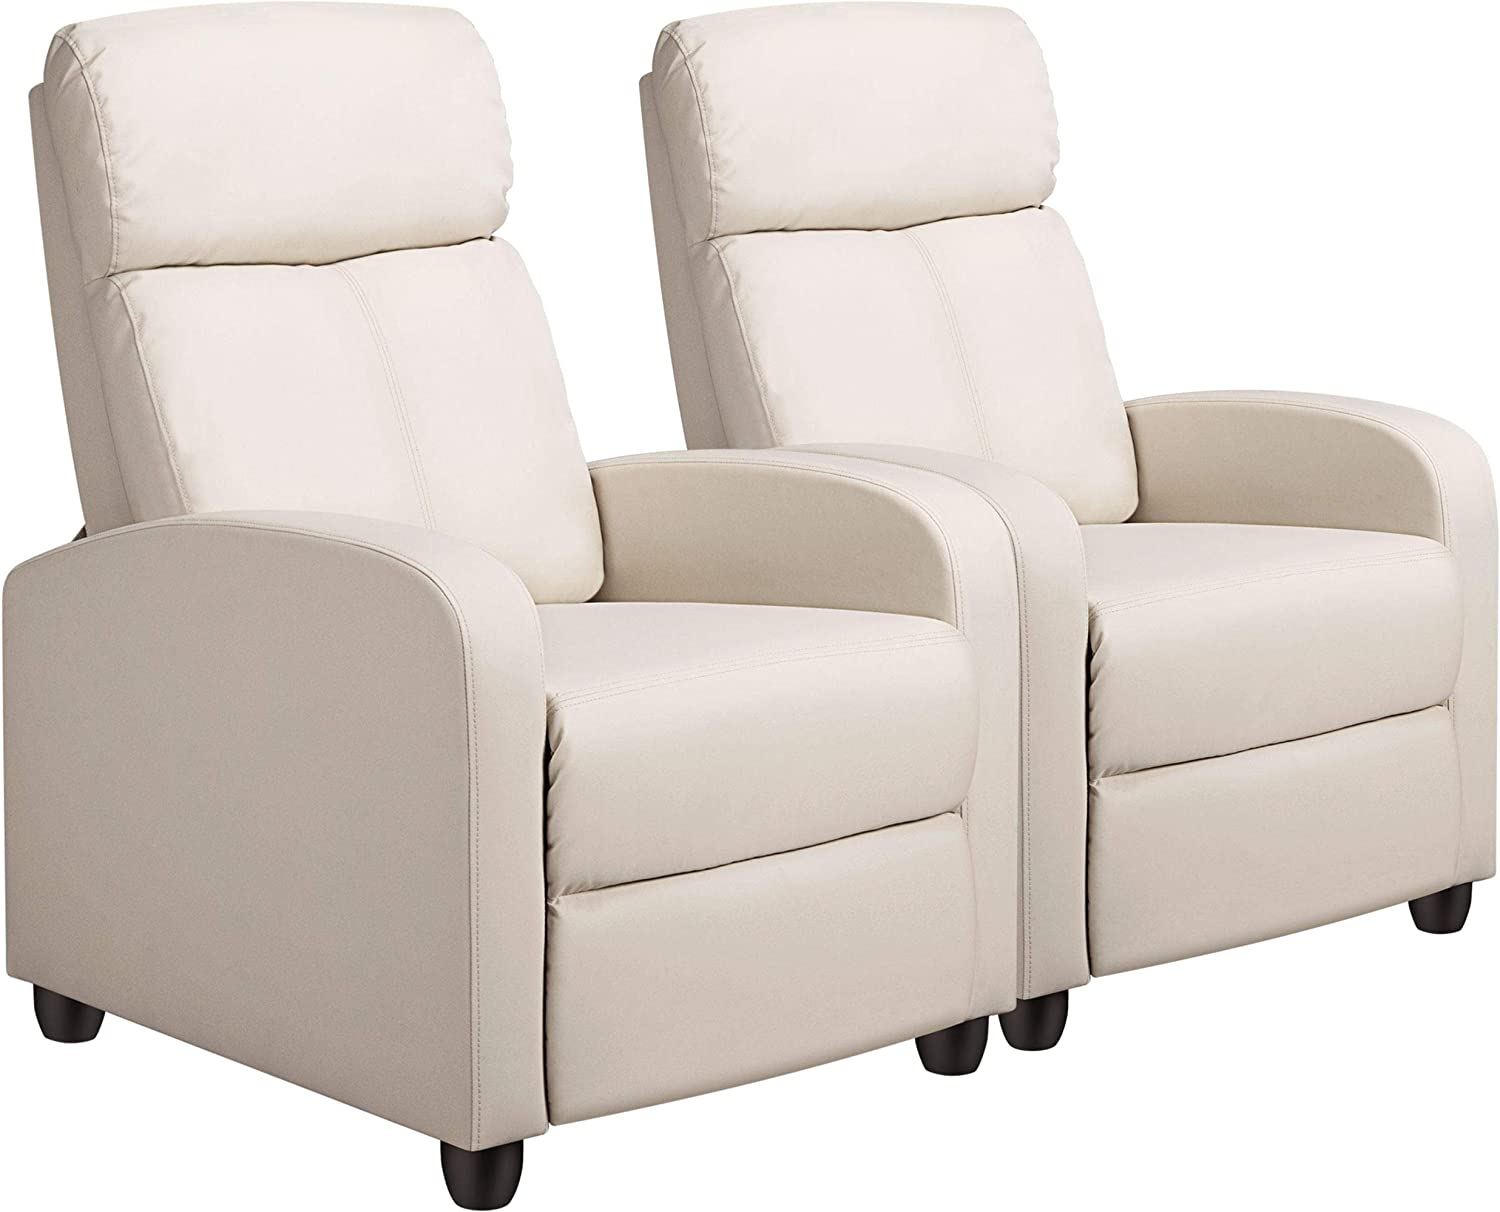 Home Theater Seating Furniture YAHEETECH Reclining Leather Chair ...